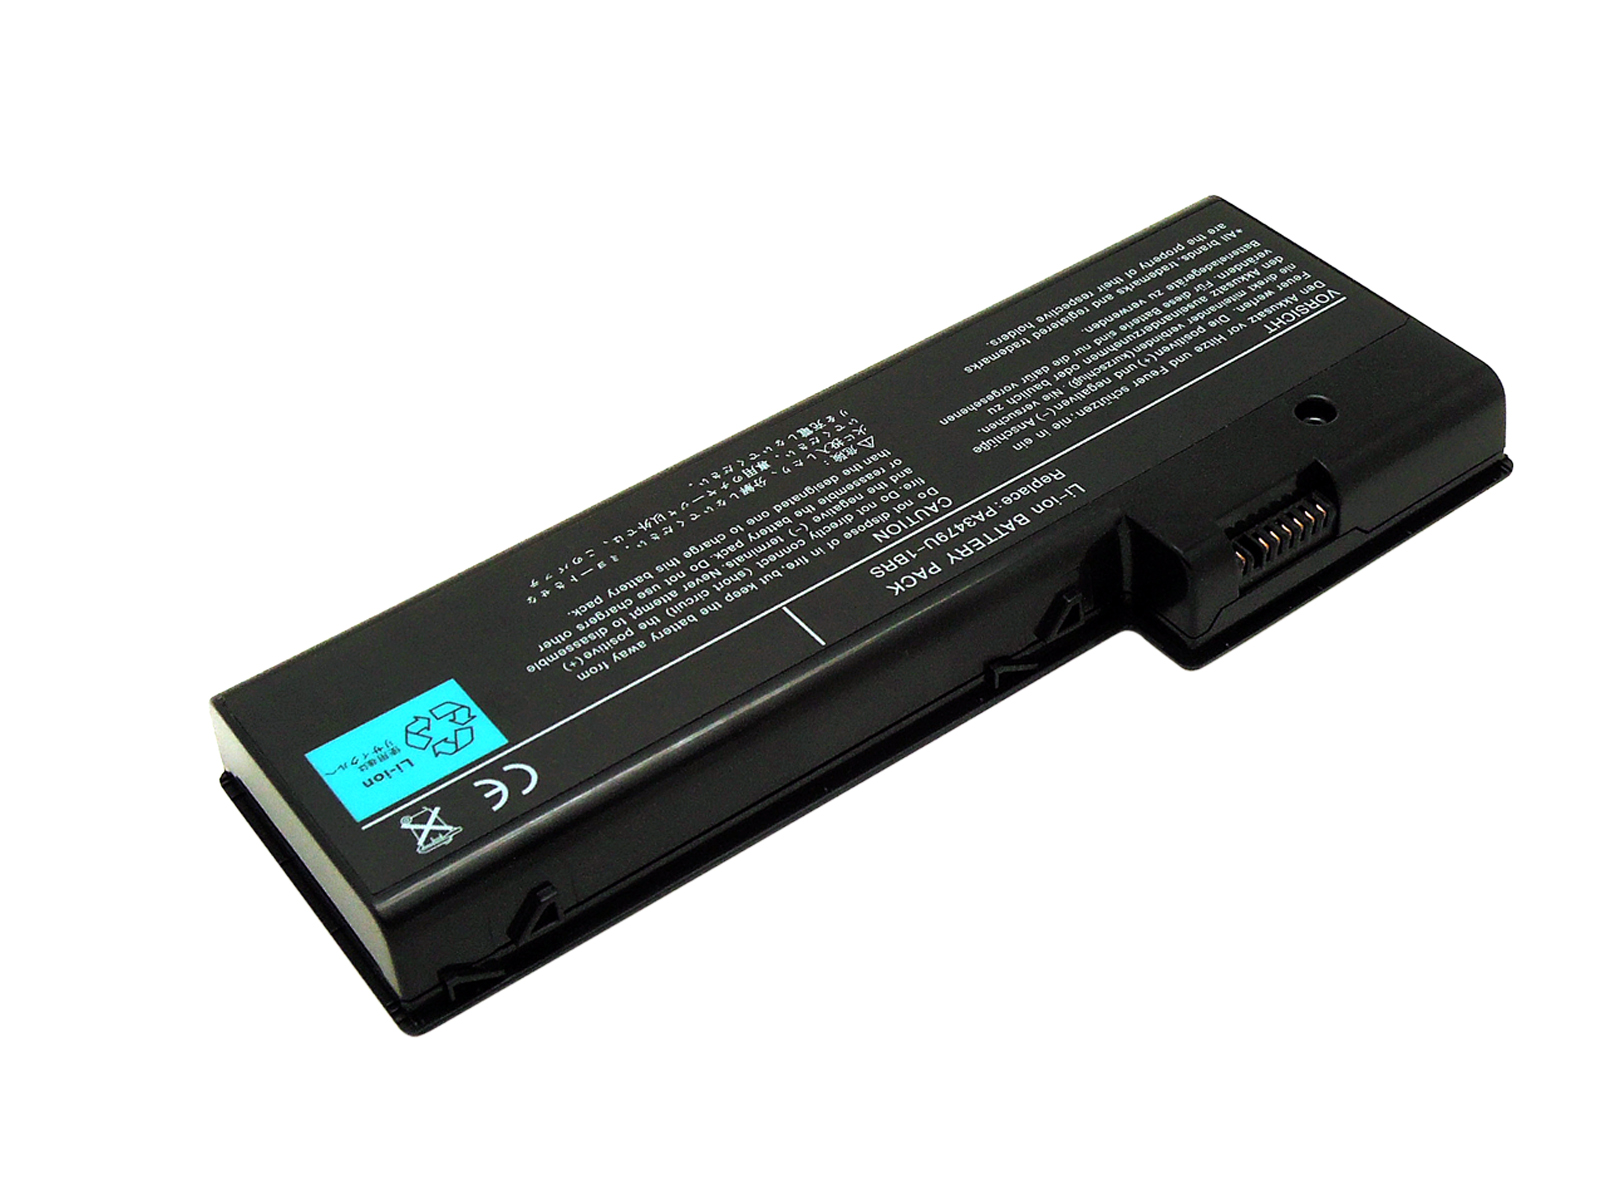 TOSHIBA SATELLITE P105 S6104 DRIVER FOR WINDOWS 8